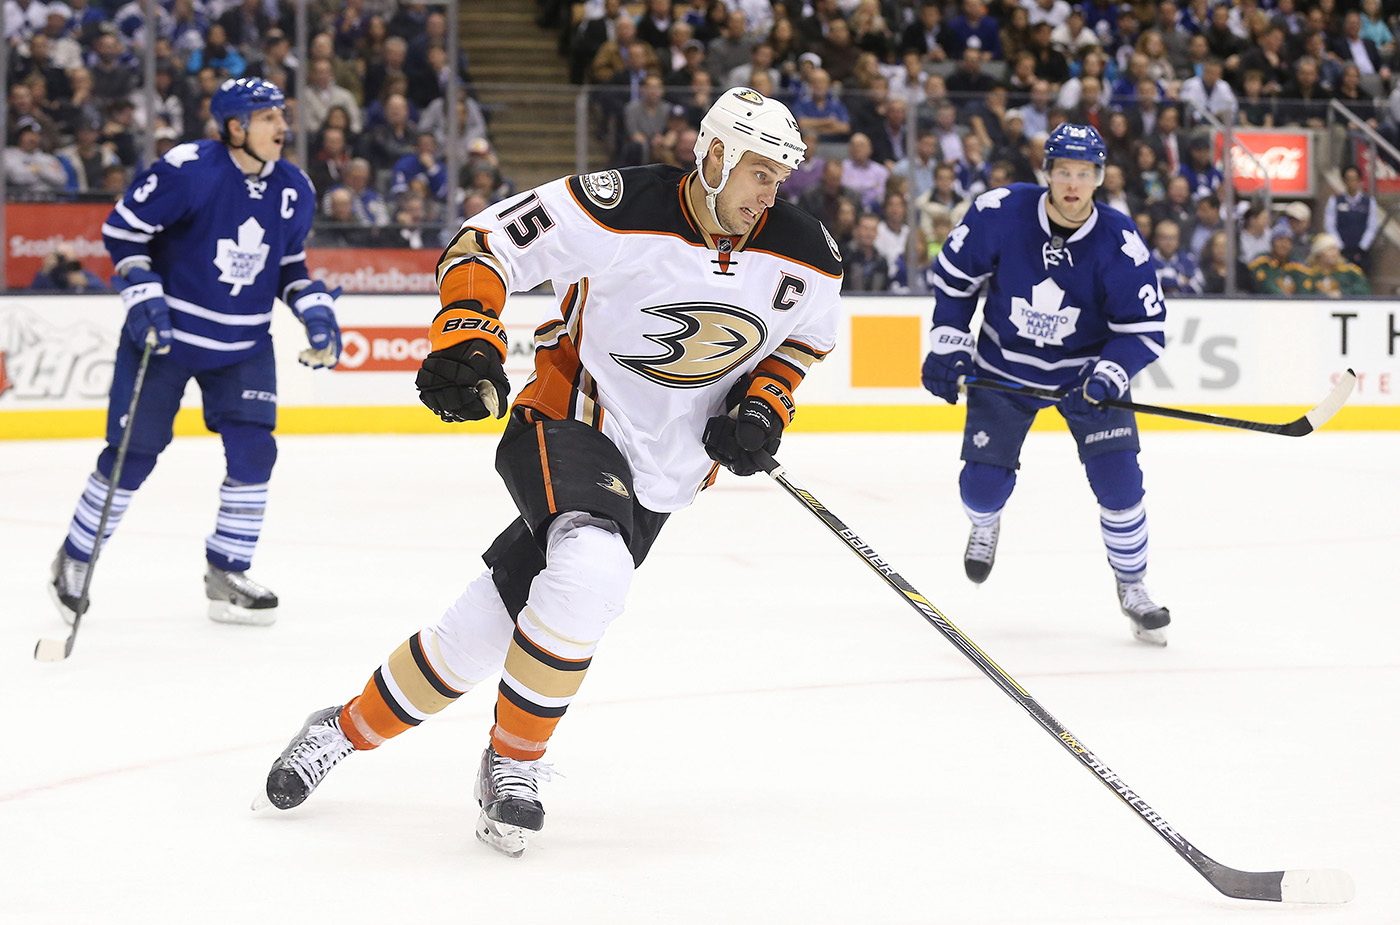 NHL: Anaheim Ducks at Toronto Maple Leafs